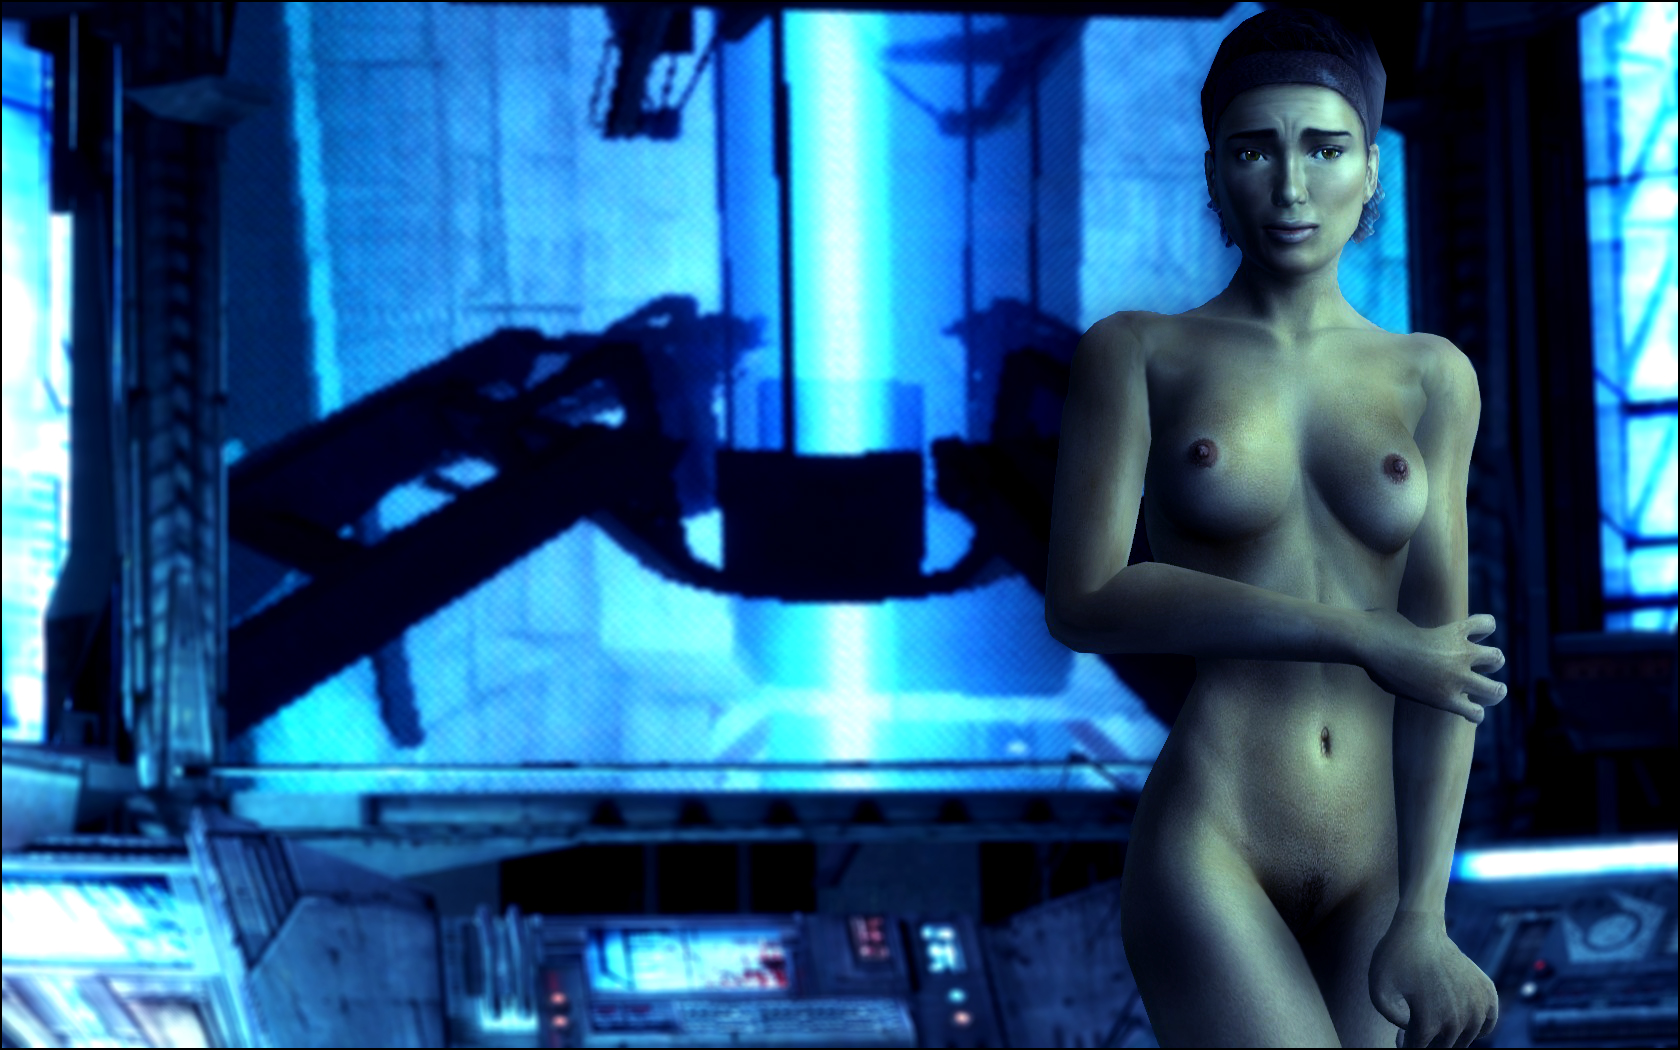 Nude alyx gmod 10 fucks photo